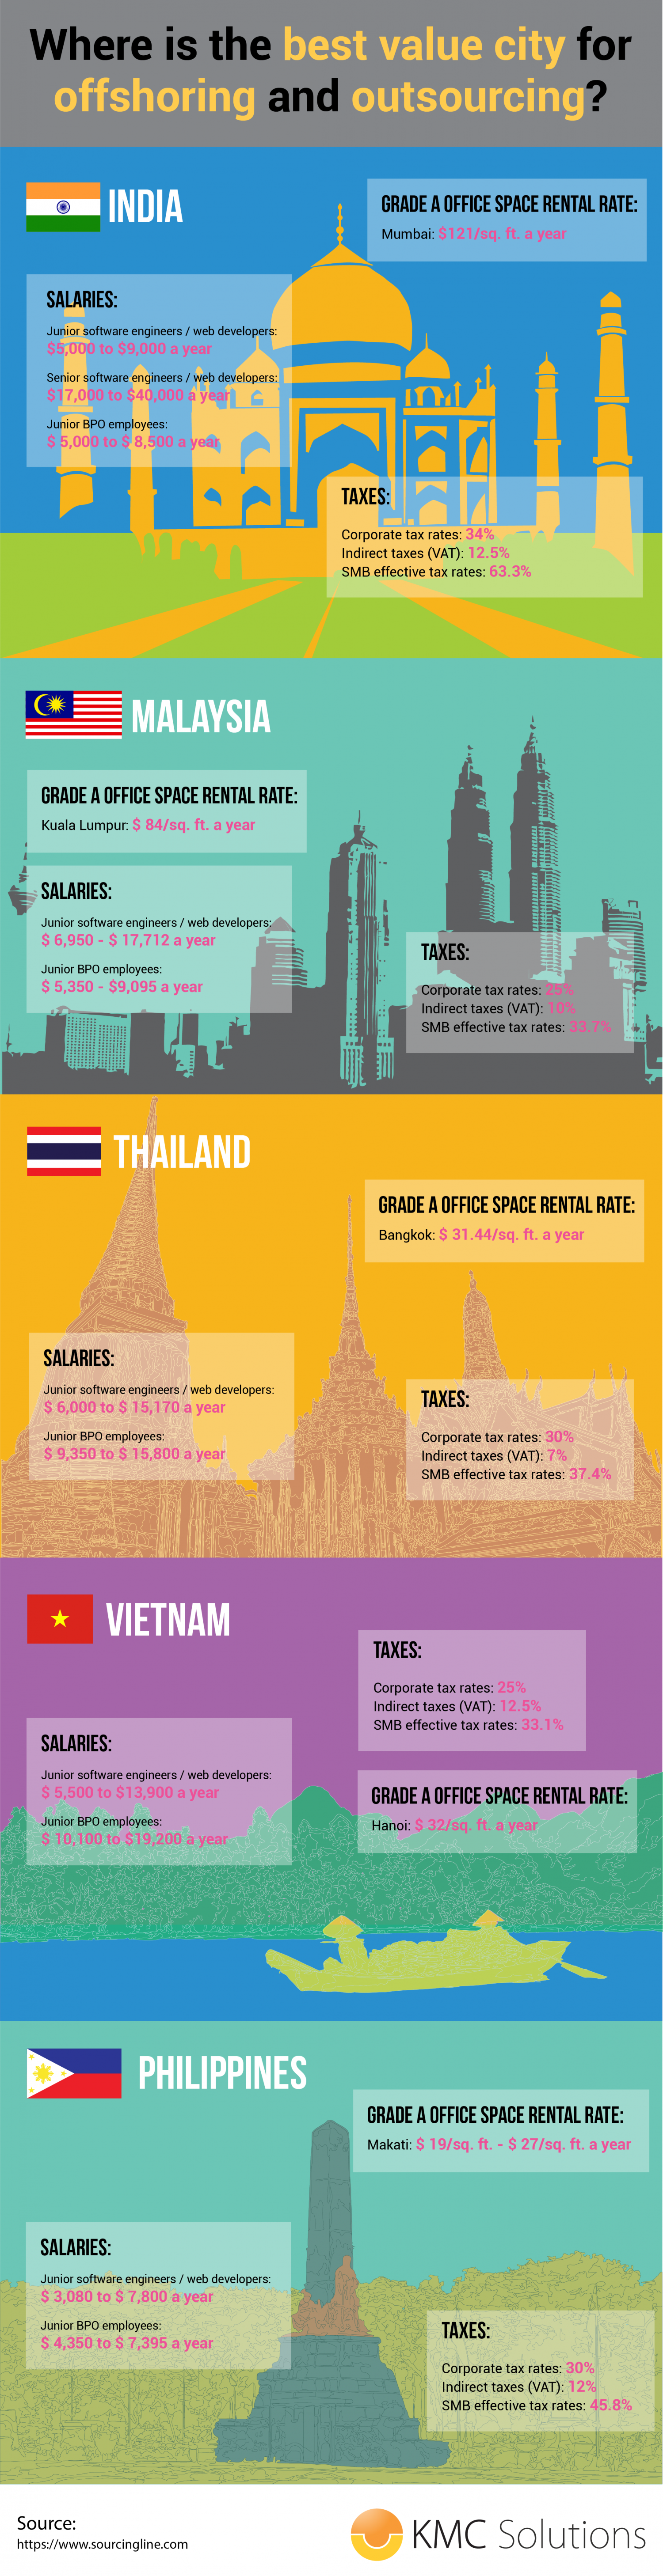 Where Is The Best Value City For Offshoring and Outsourcing? Infographic